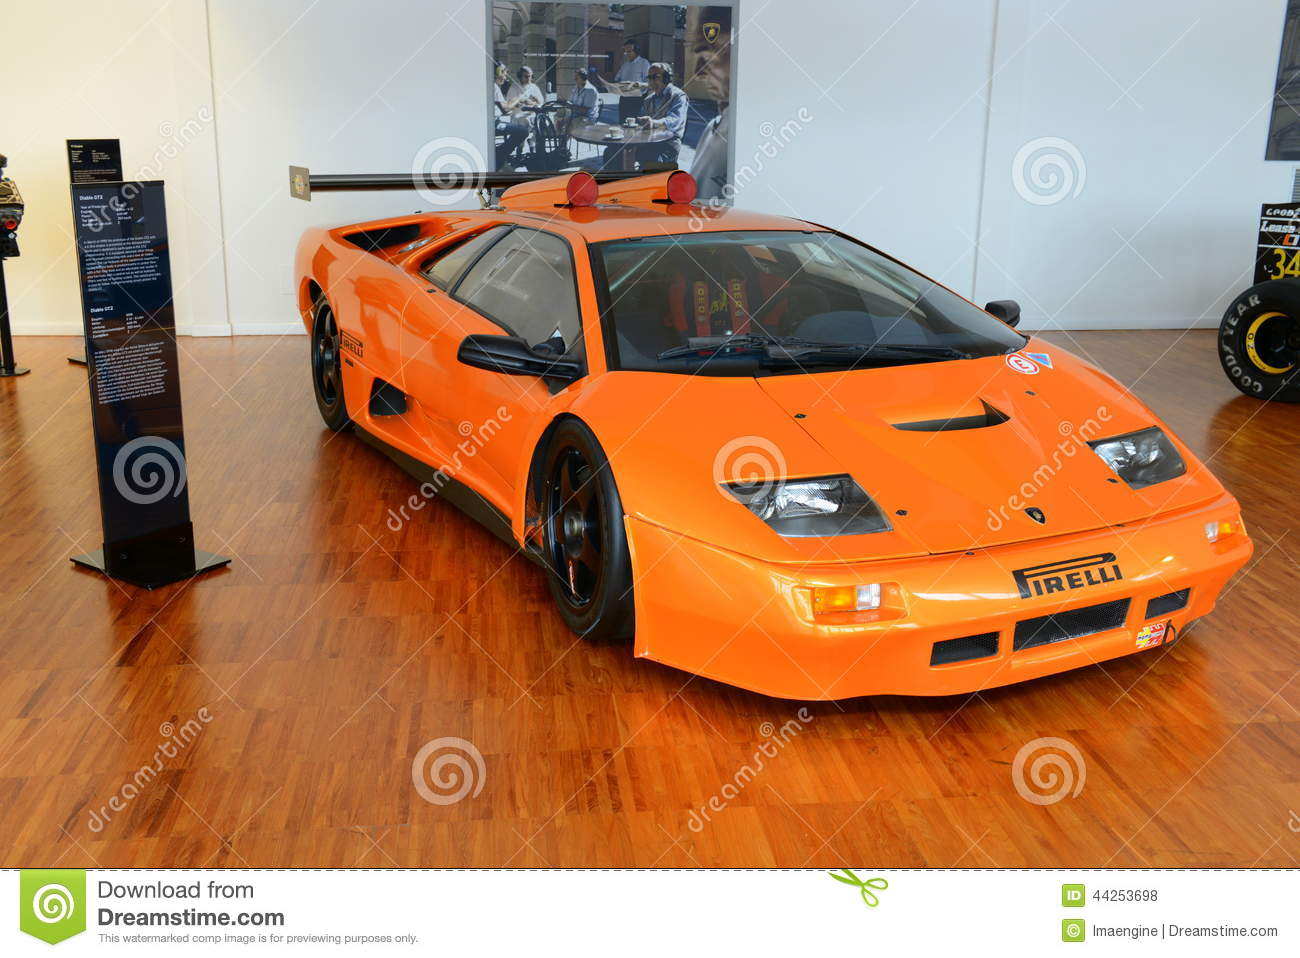 Lamborghini Diablo Gt2 Editorial Stock Photo Image Of Lp400 44253698